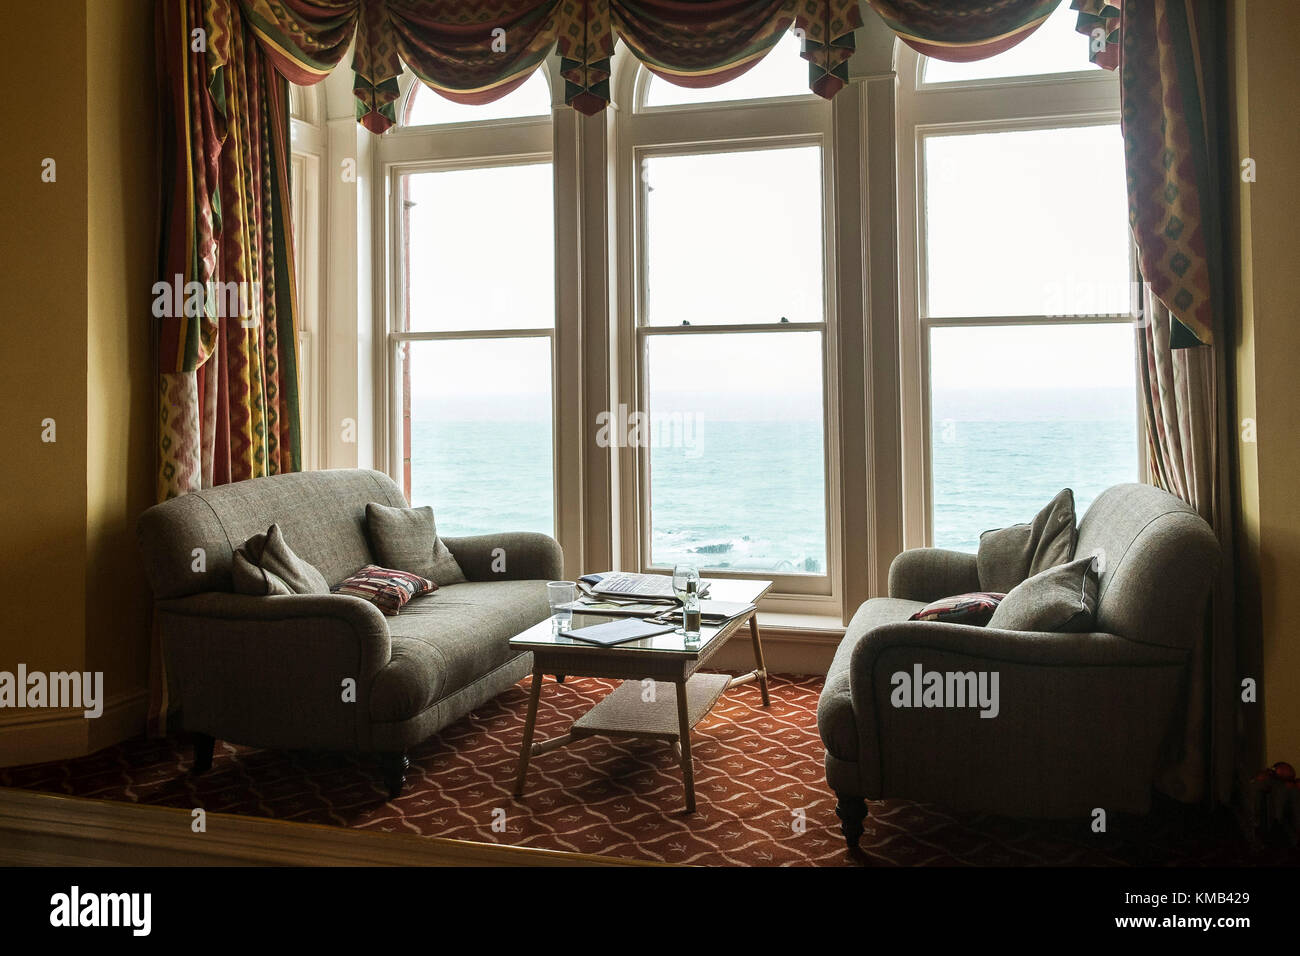 Two sofas settees in a window bay of a hotel. - Stock Image